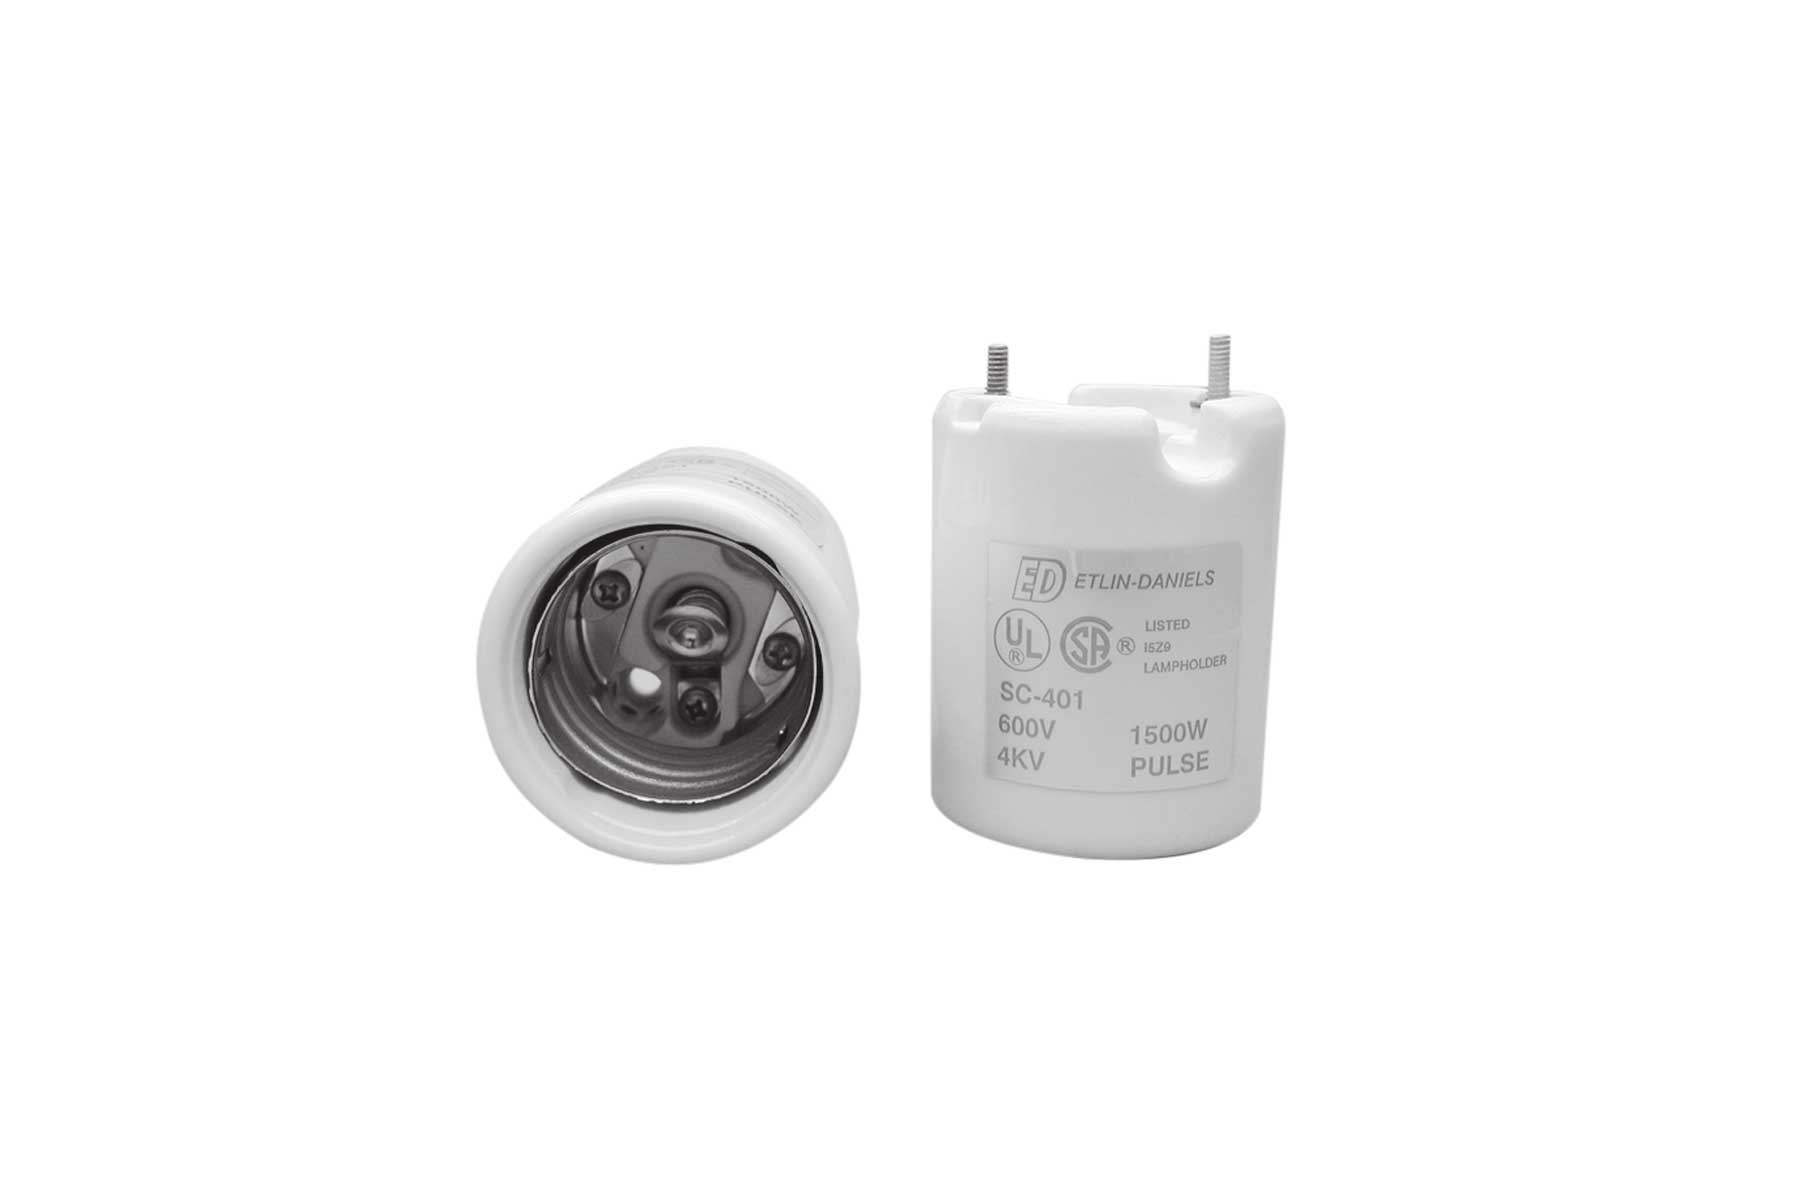 5KV Pulse Rated Mogul Base Porcelain Incandescent Light Socket with Pal Nuts and Wire Ways